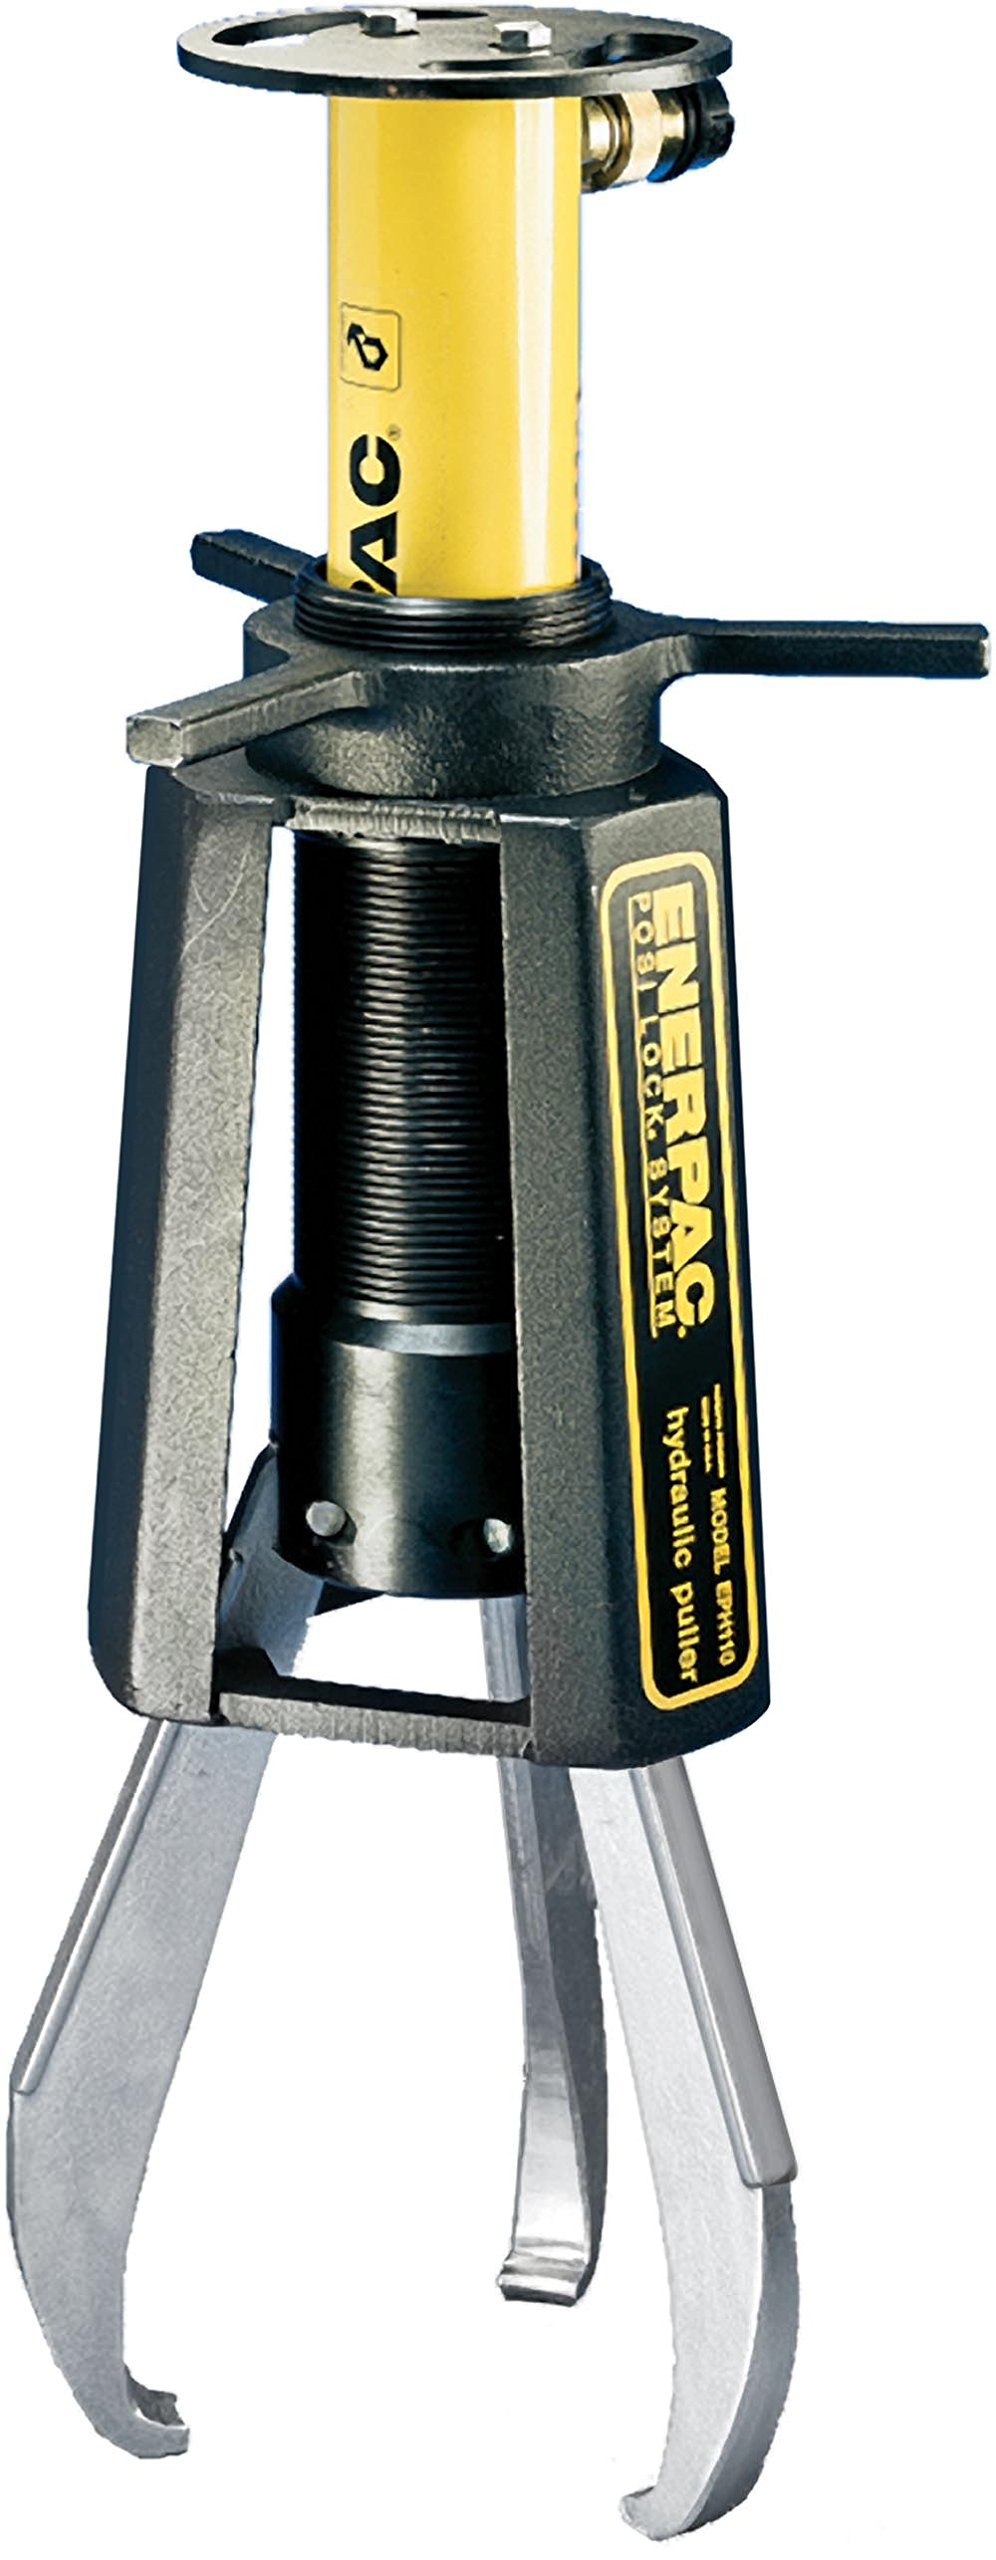 Enerpac EPHR-108 10-Ton Capacity Hydraulic Grip Puller Set with Cylinder and Three-Arm Jaw, 0.75''-12'' Reach